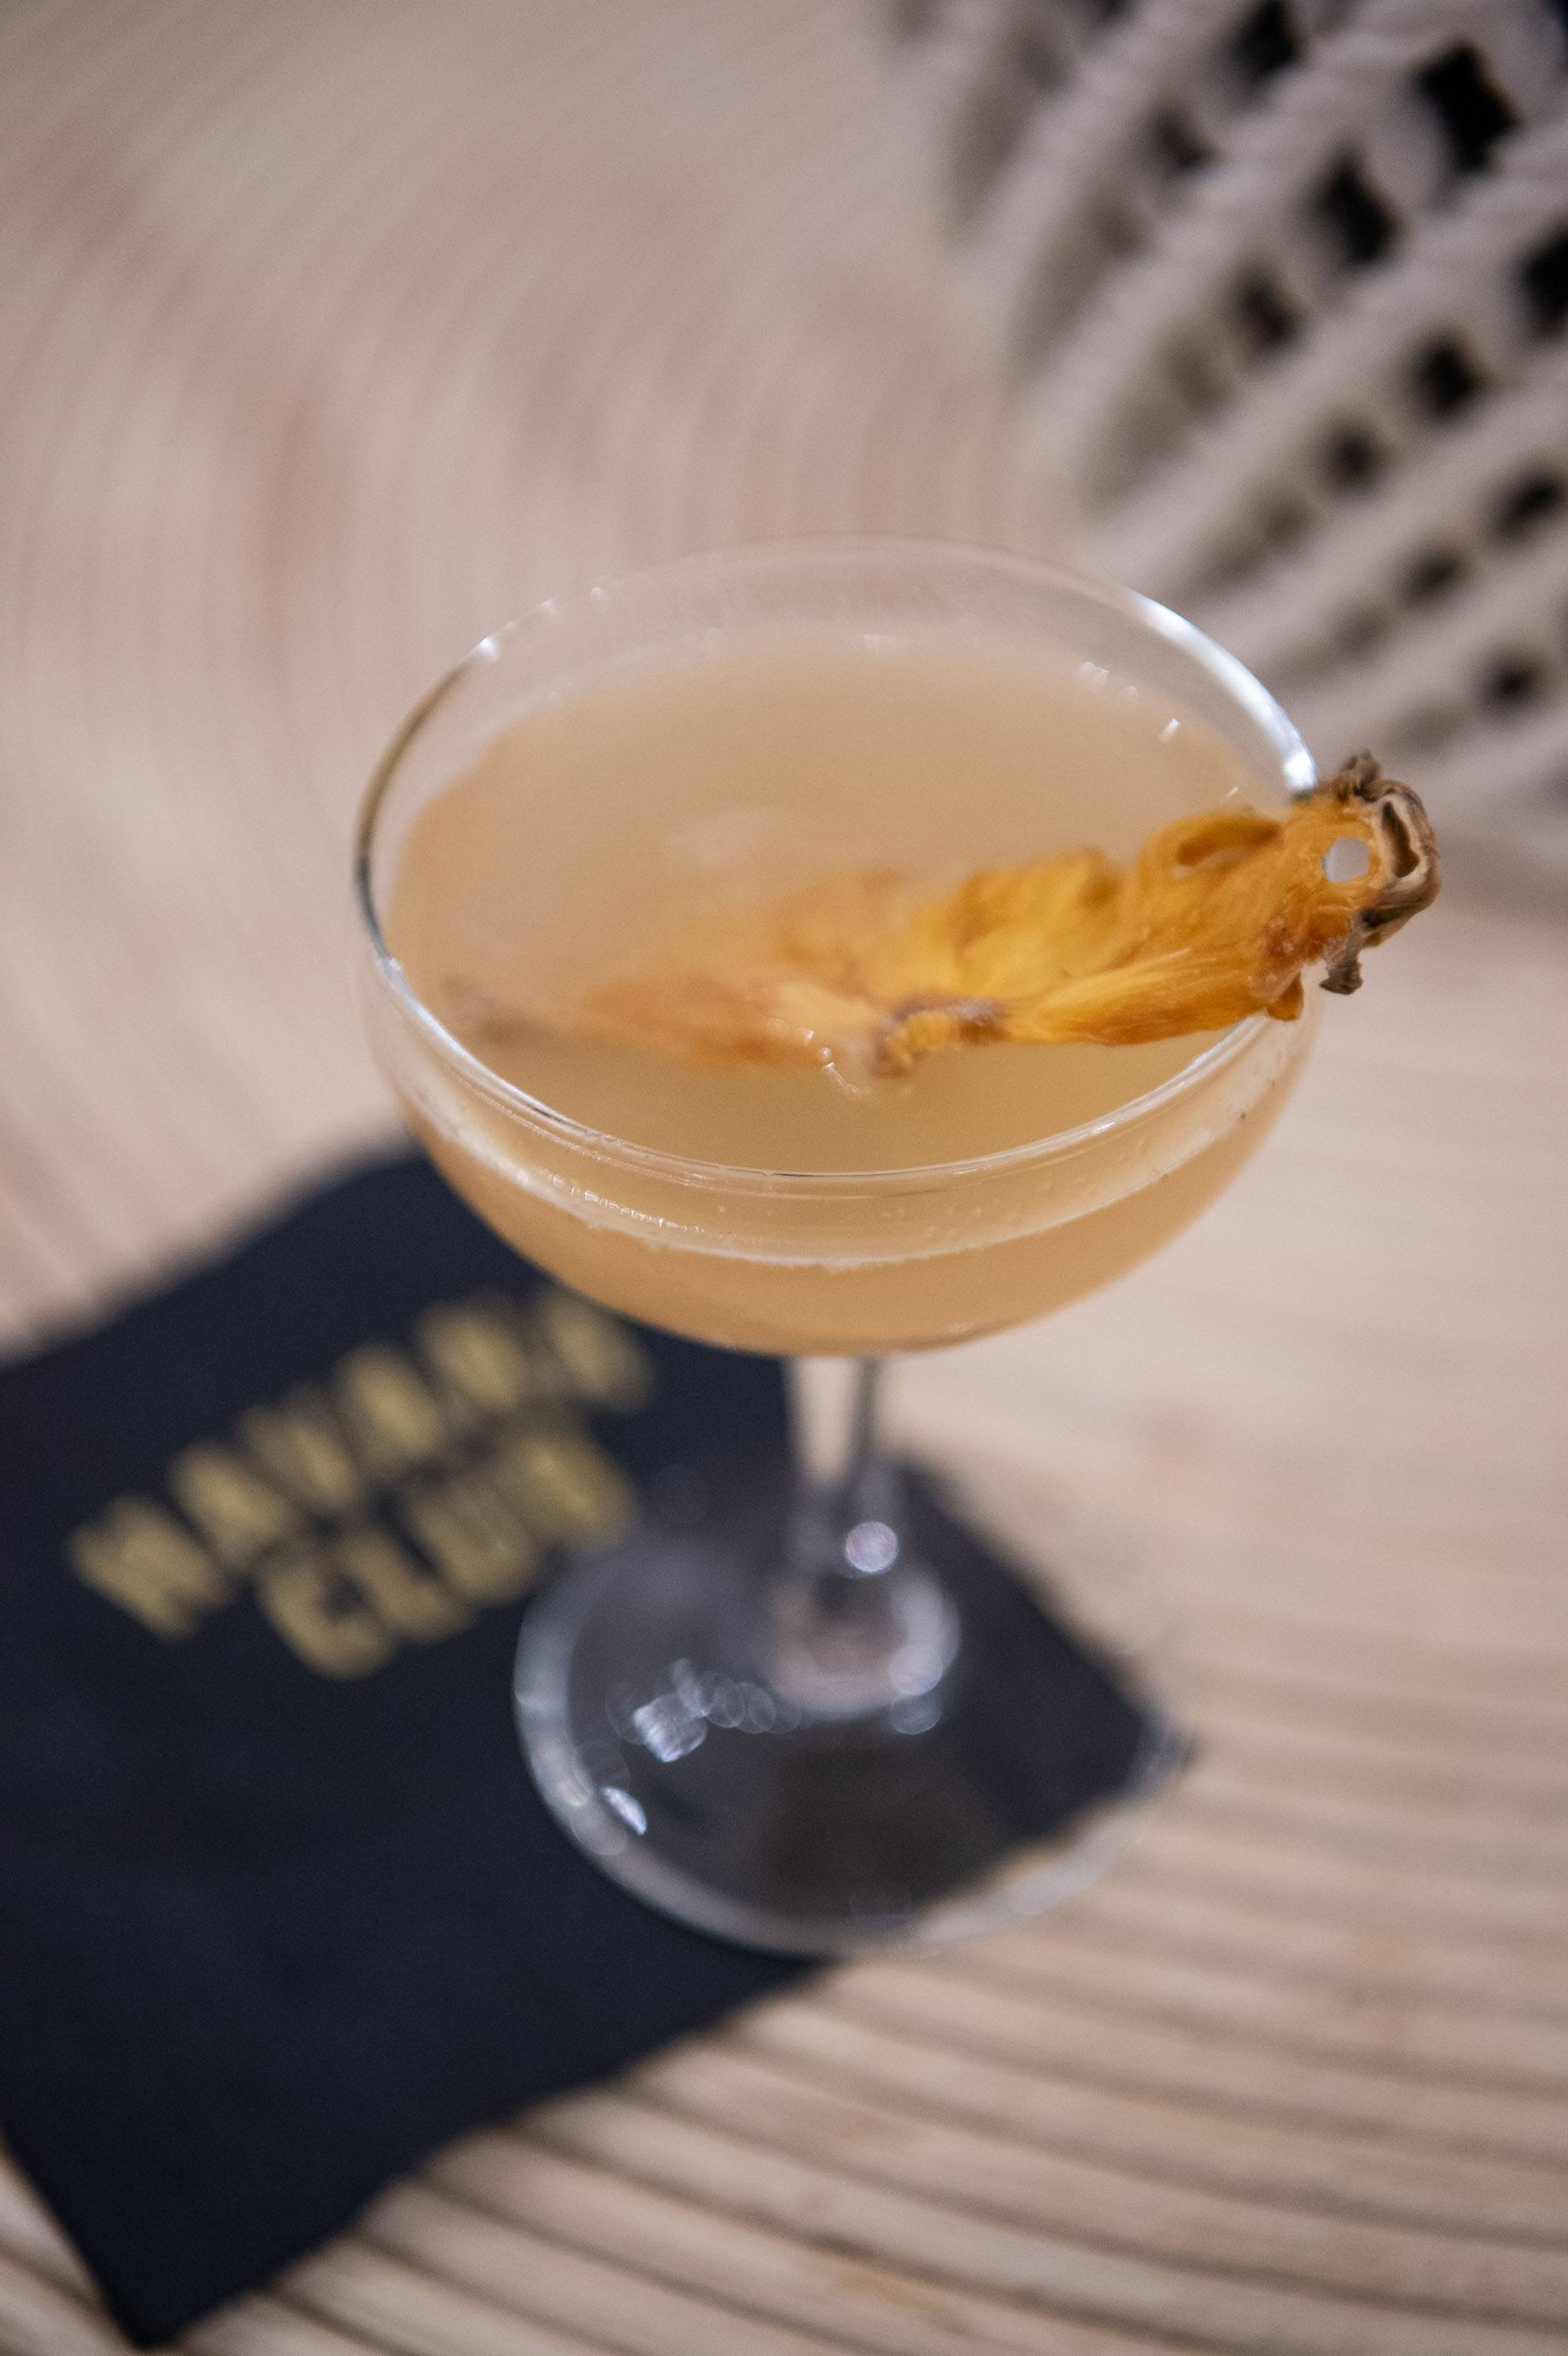 Rum cocktail with garnish photographed on a serving tray